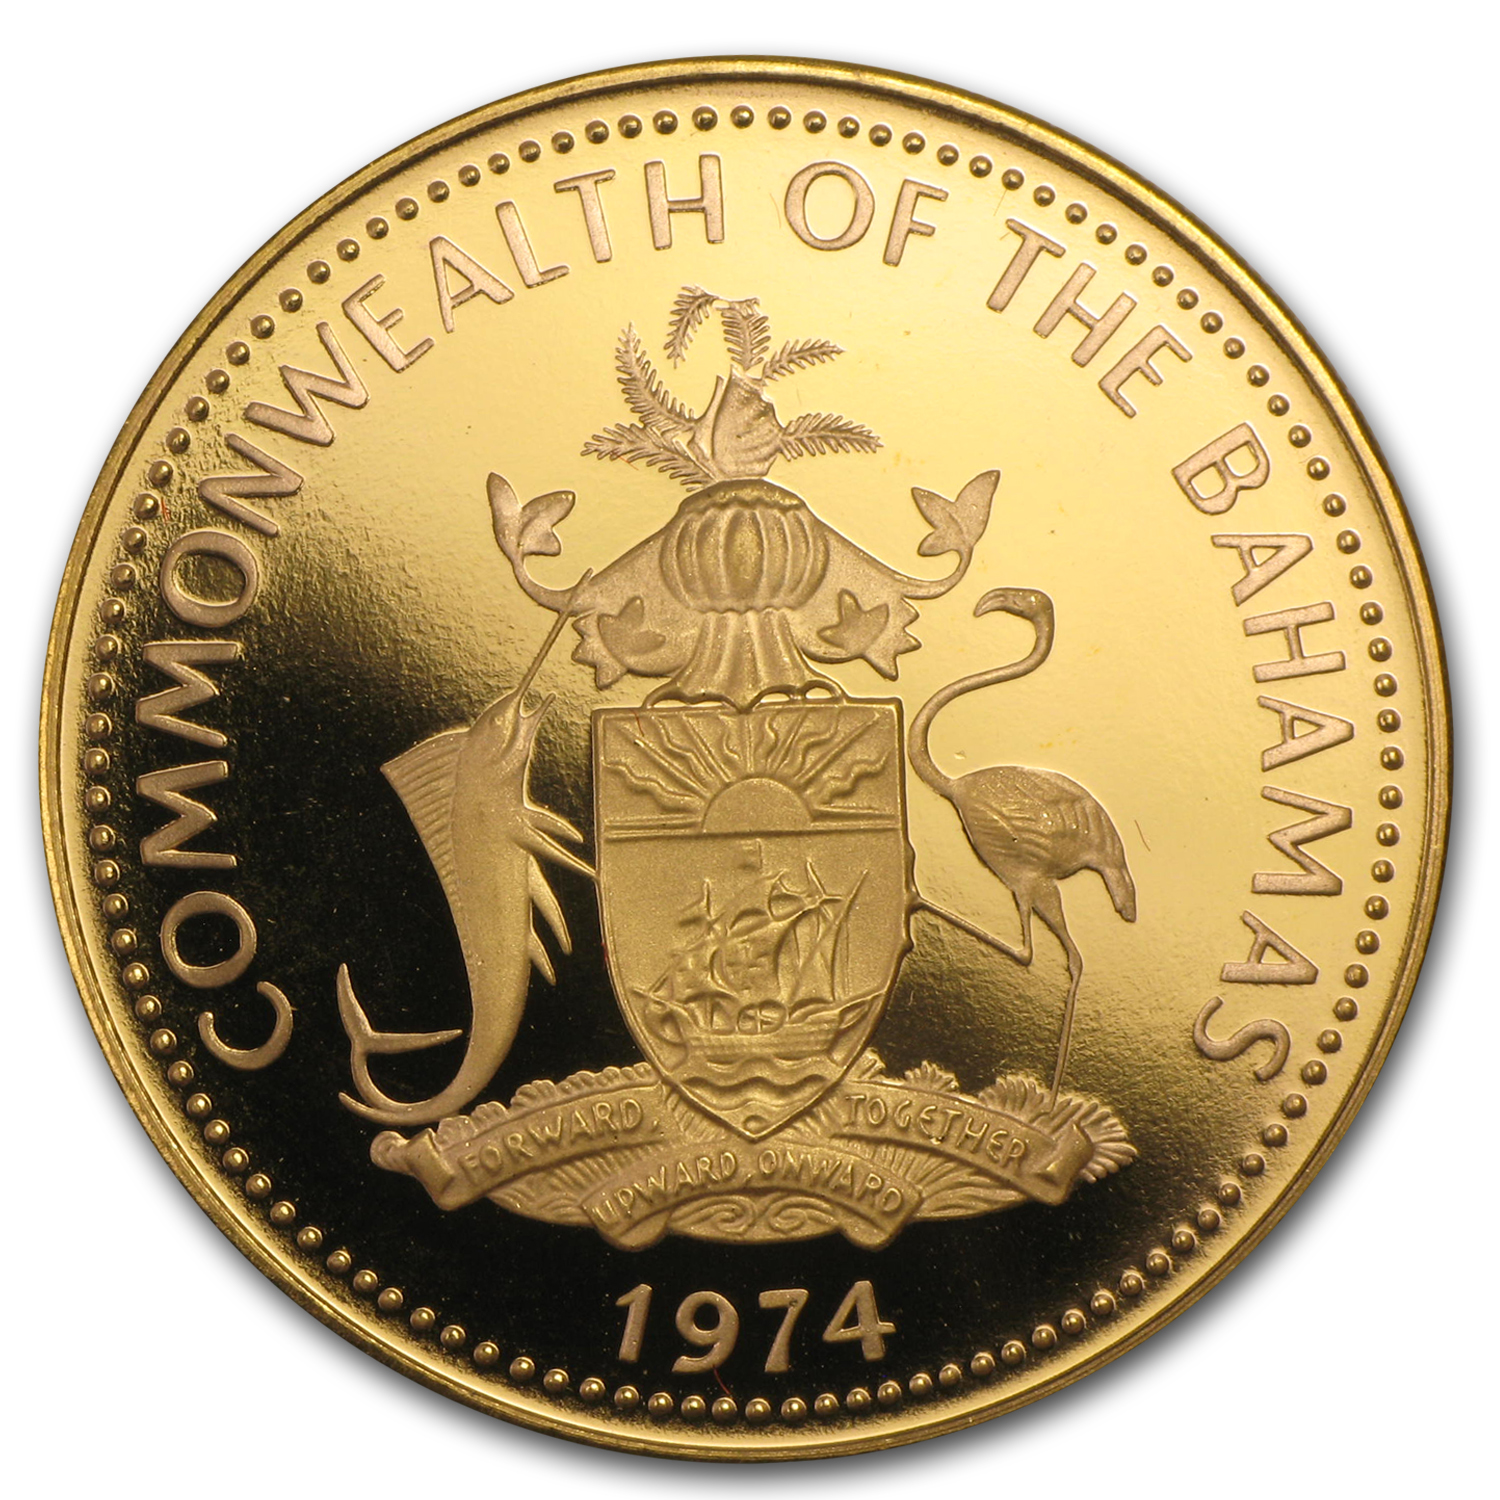 Bahamas 1974 Gold $100 Coin (Proof)